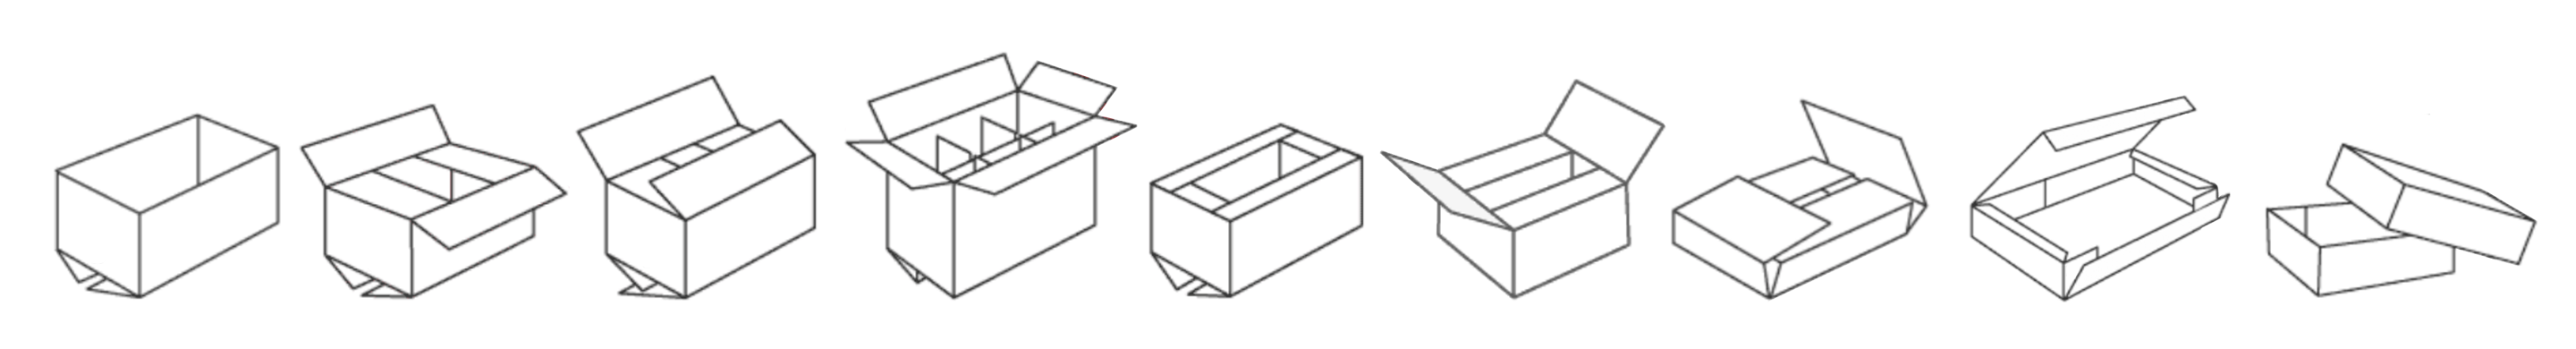 Boxes example